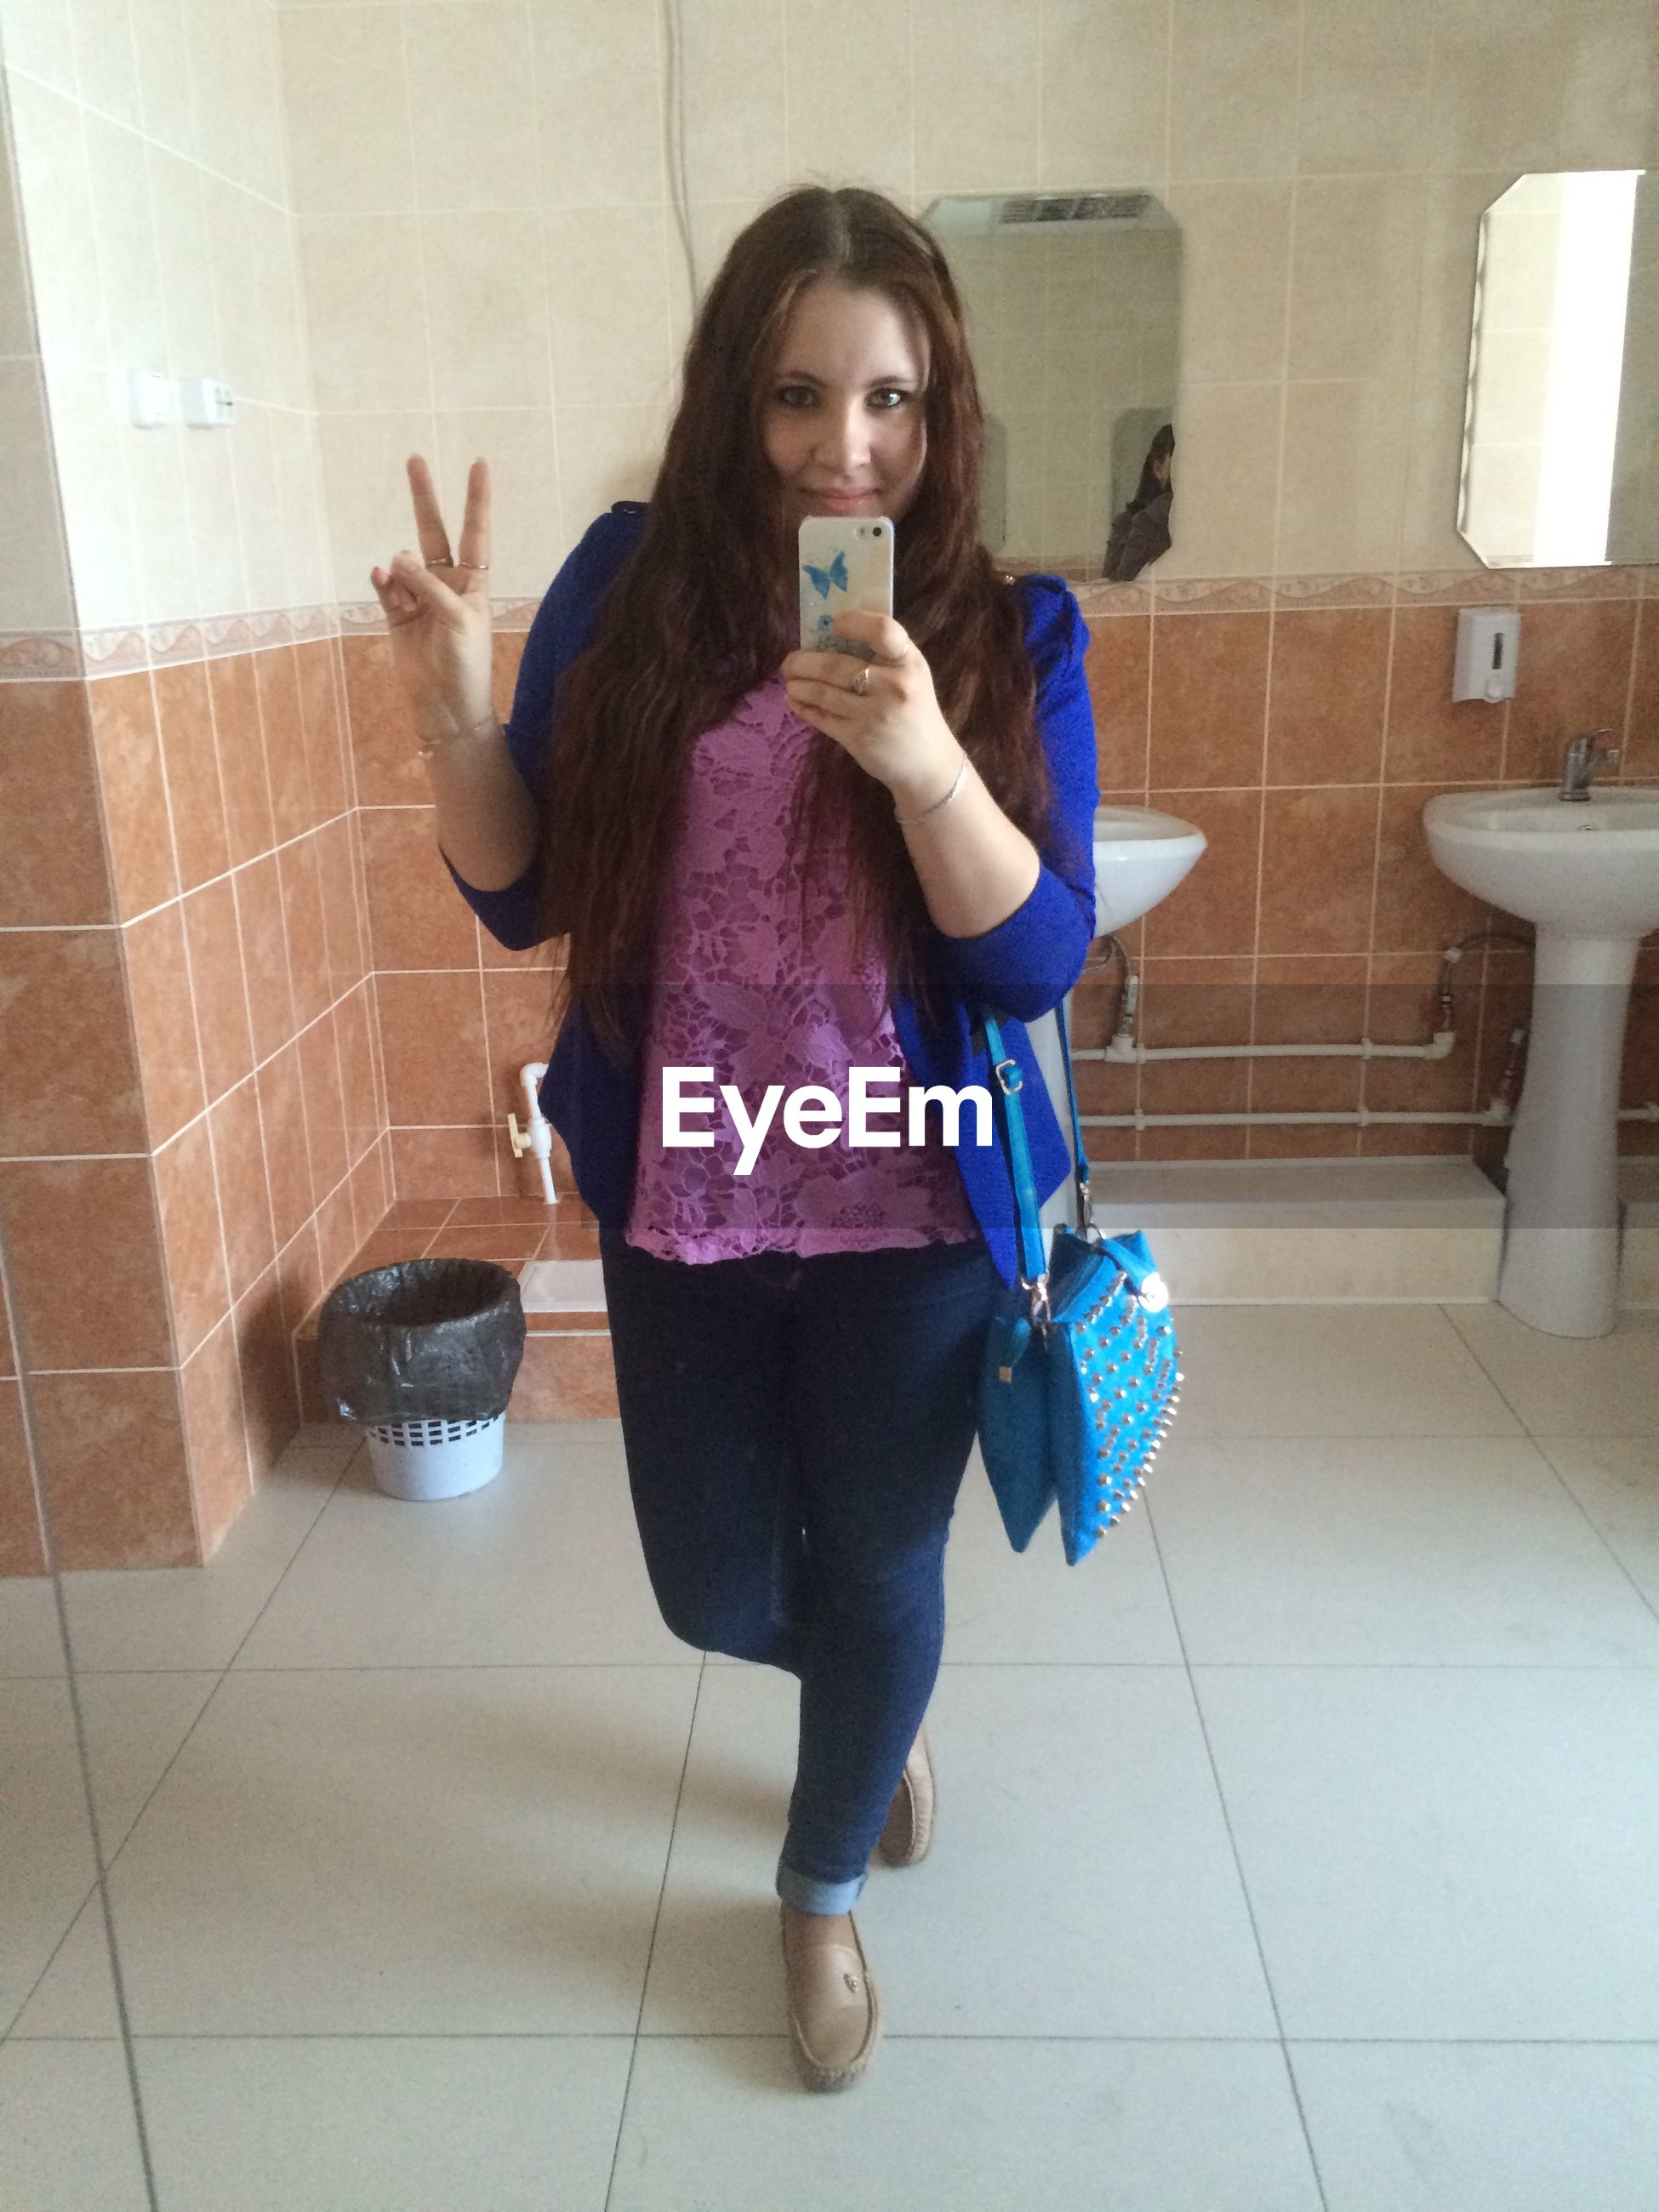 full length, indoors, lifestyles, childhood, leisure activity, person, tiled floor, casual clothing, flooring, girls, bathroom, sitting, elementary age, high angle view, boys, playing, fun, playful